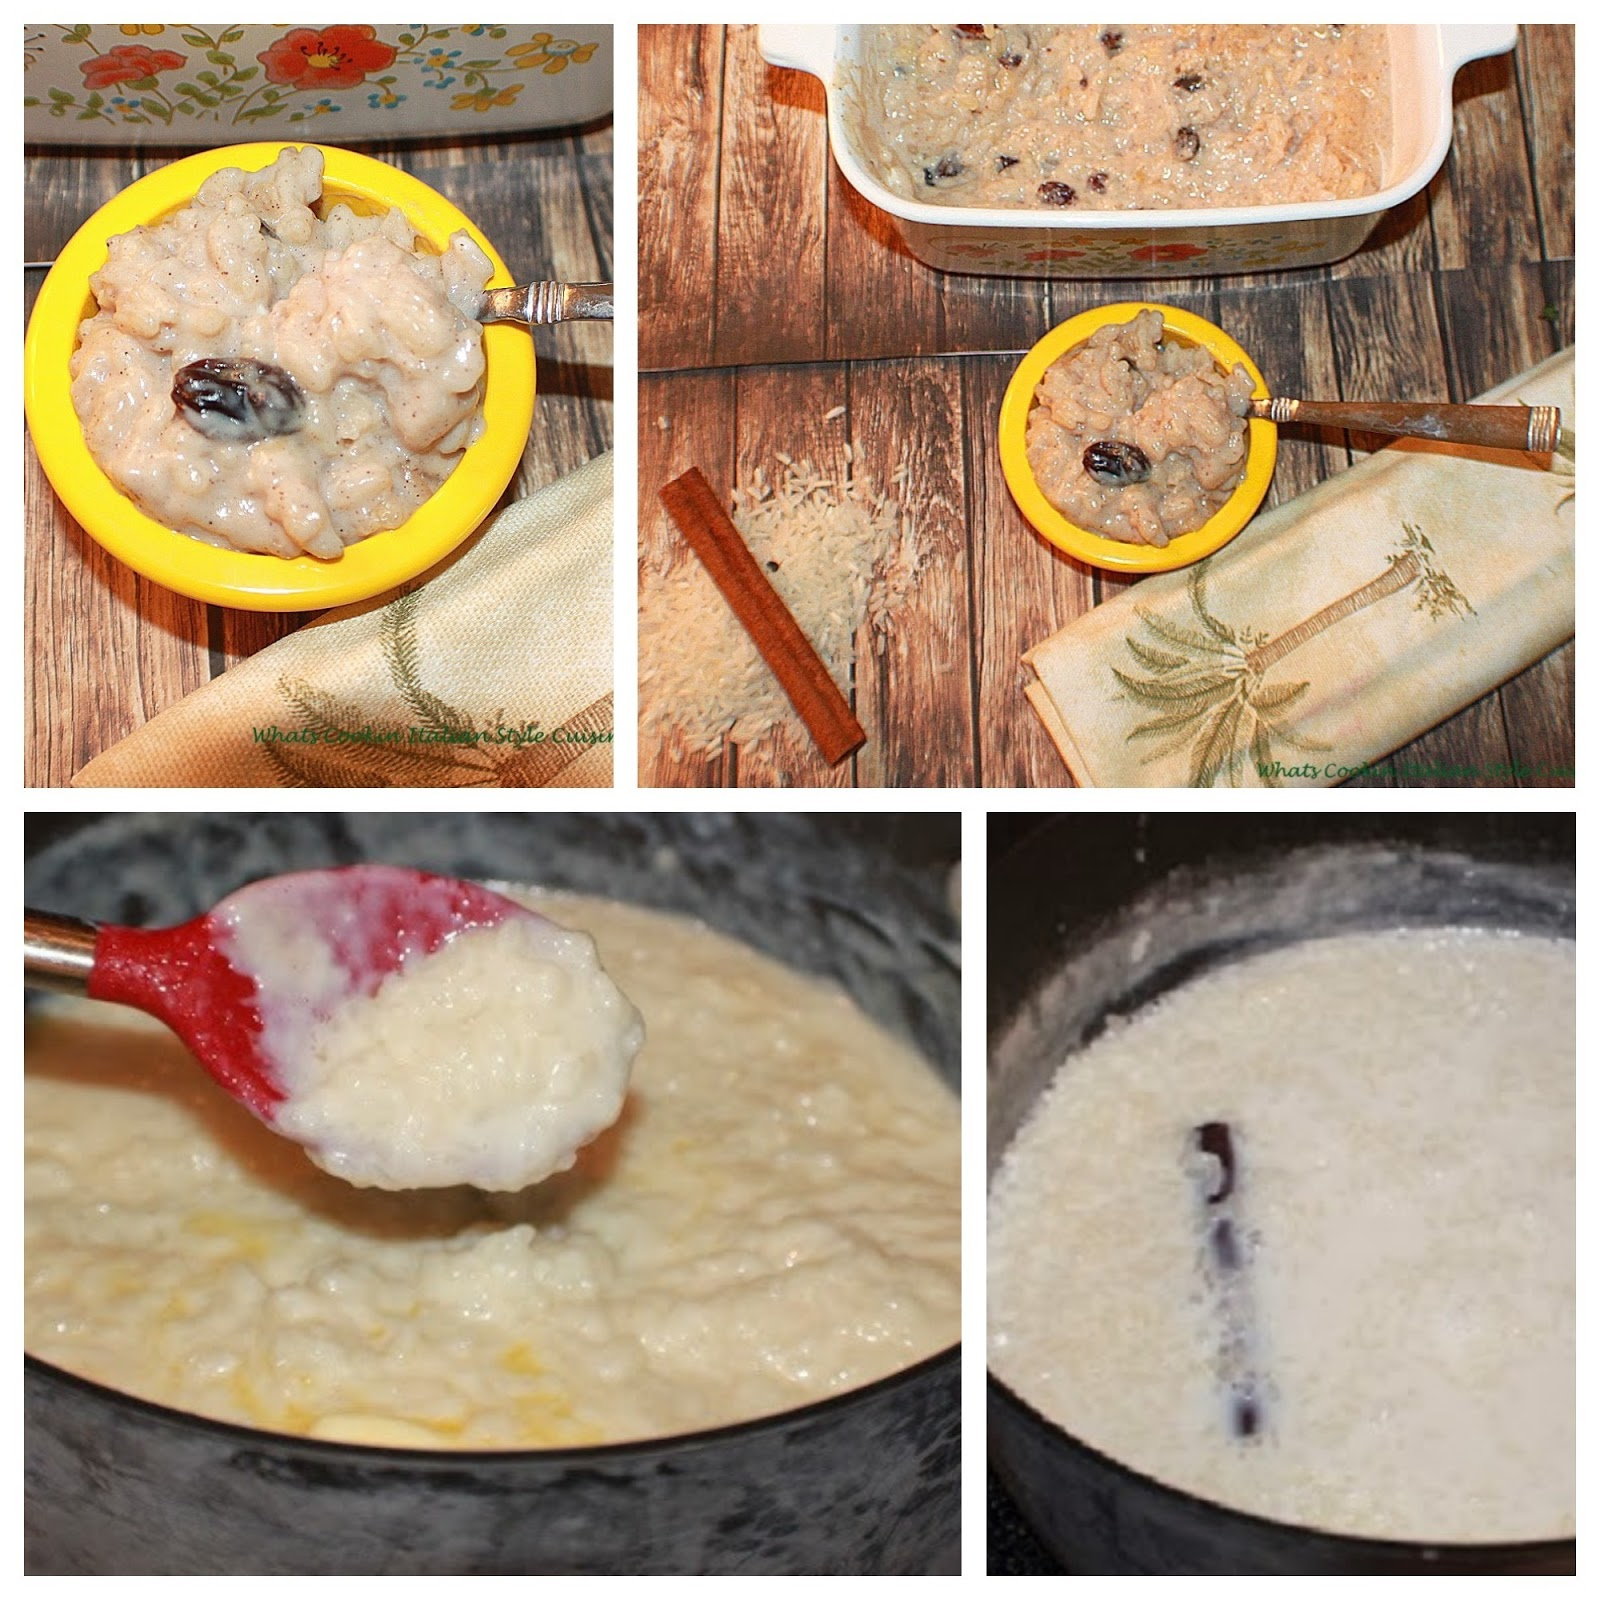 A creamy delicious rice pudding that I grew up on #rice #pudding